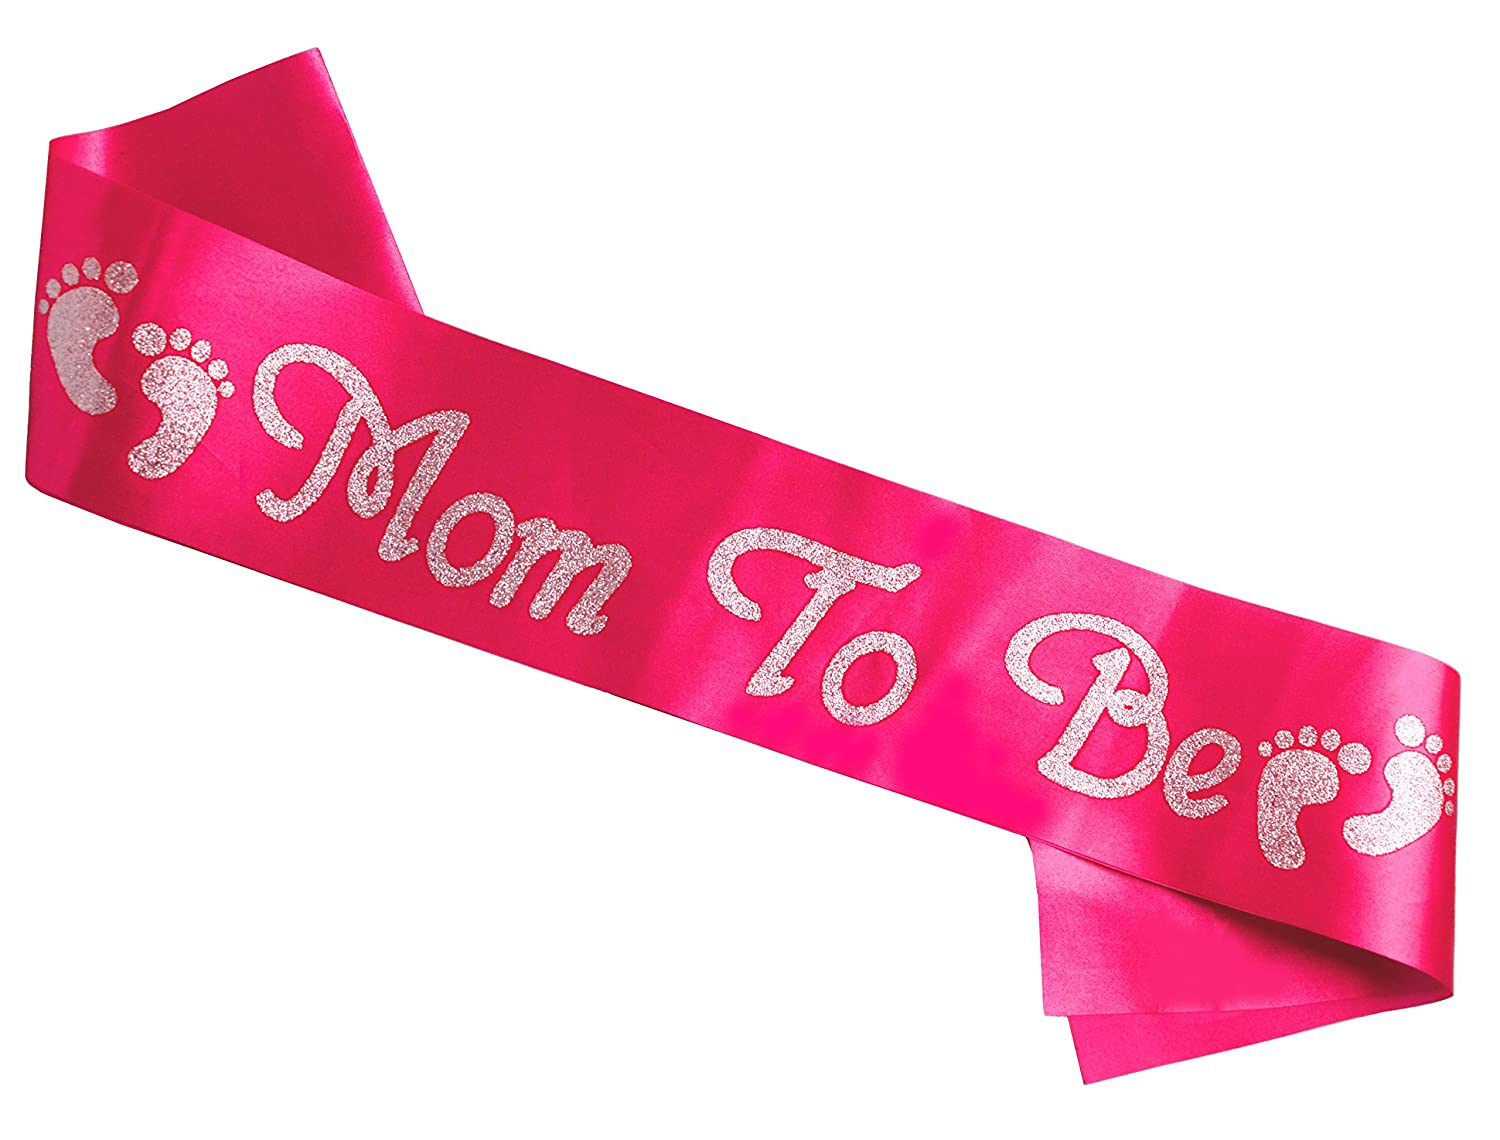 Amazon.com : Mom To Be Sash   Soft, Pink Satin With Silver Glitter   Baby  Shower Sash For Mom   Baby Girl Or Twins   Neutral   Best Baby Shower Gift  Or Baby ...